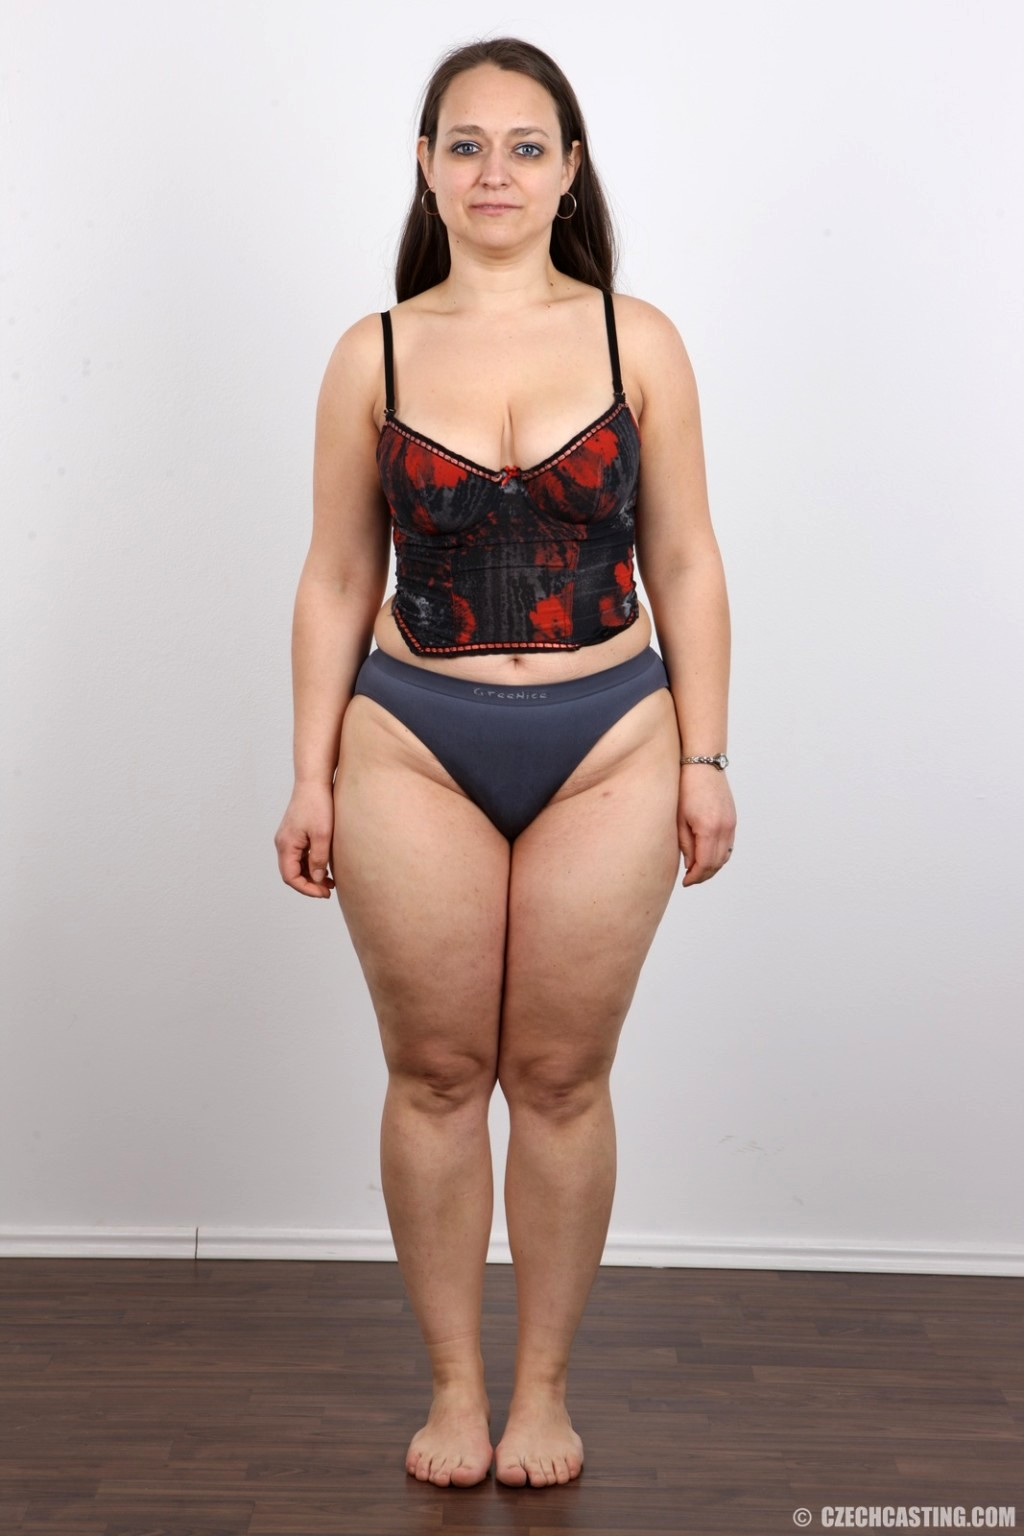 Chubby lingerie bbw sex valuable idea